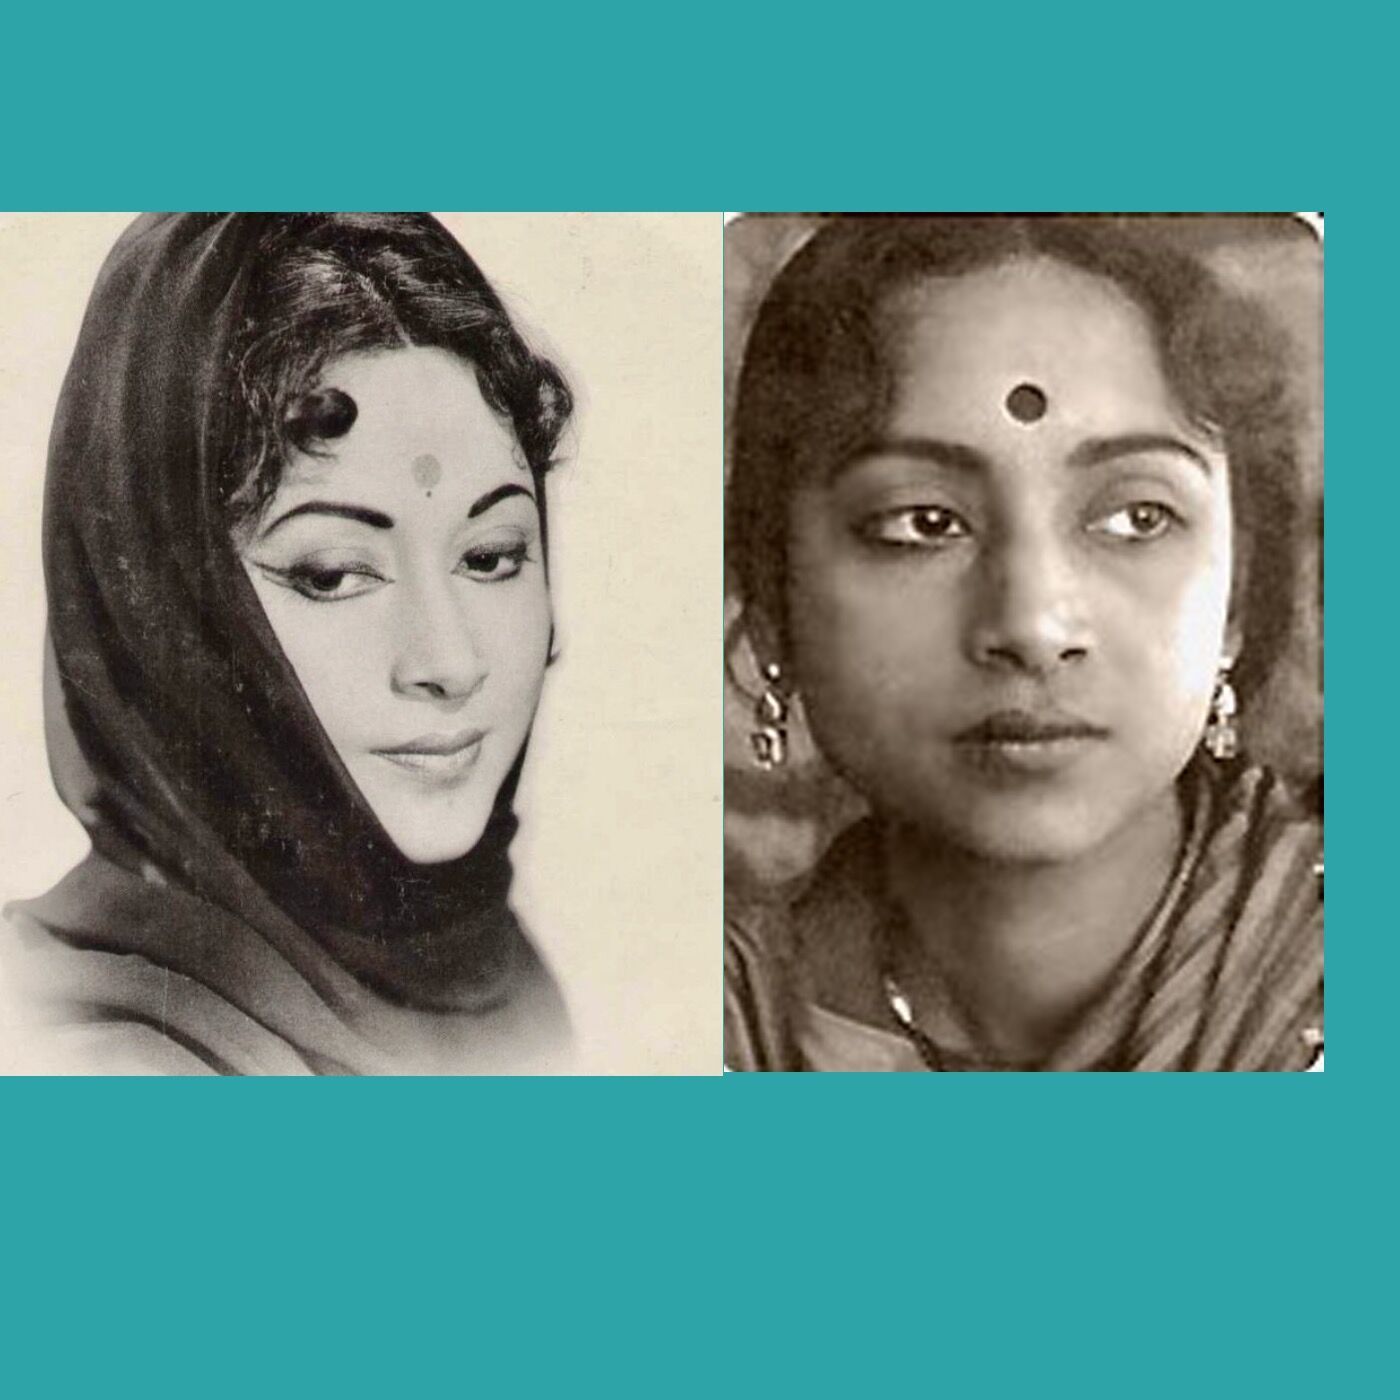 Remembering Geeta Dutt. Music and Poetry curated by Harish Saluja.